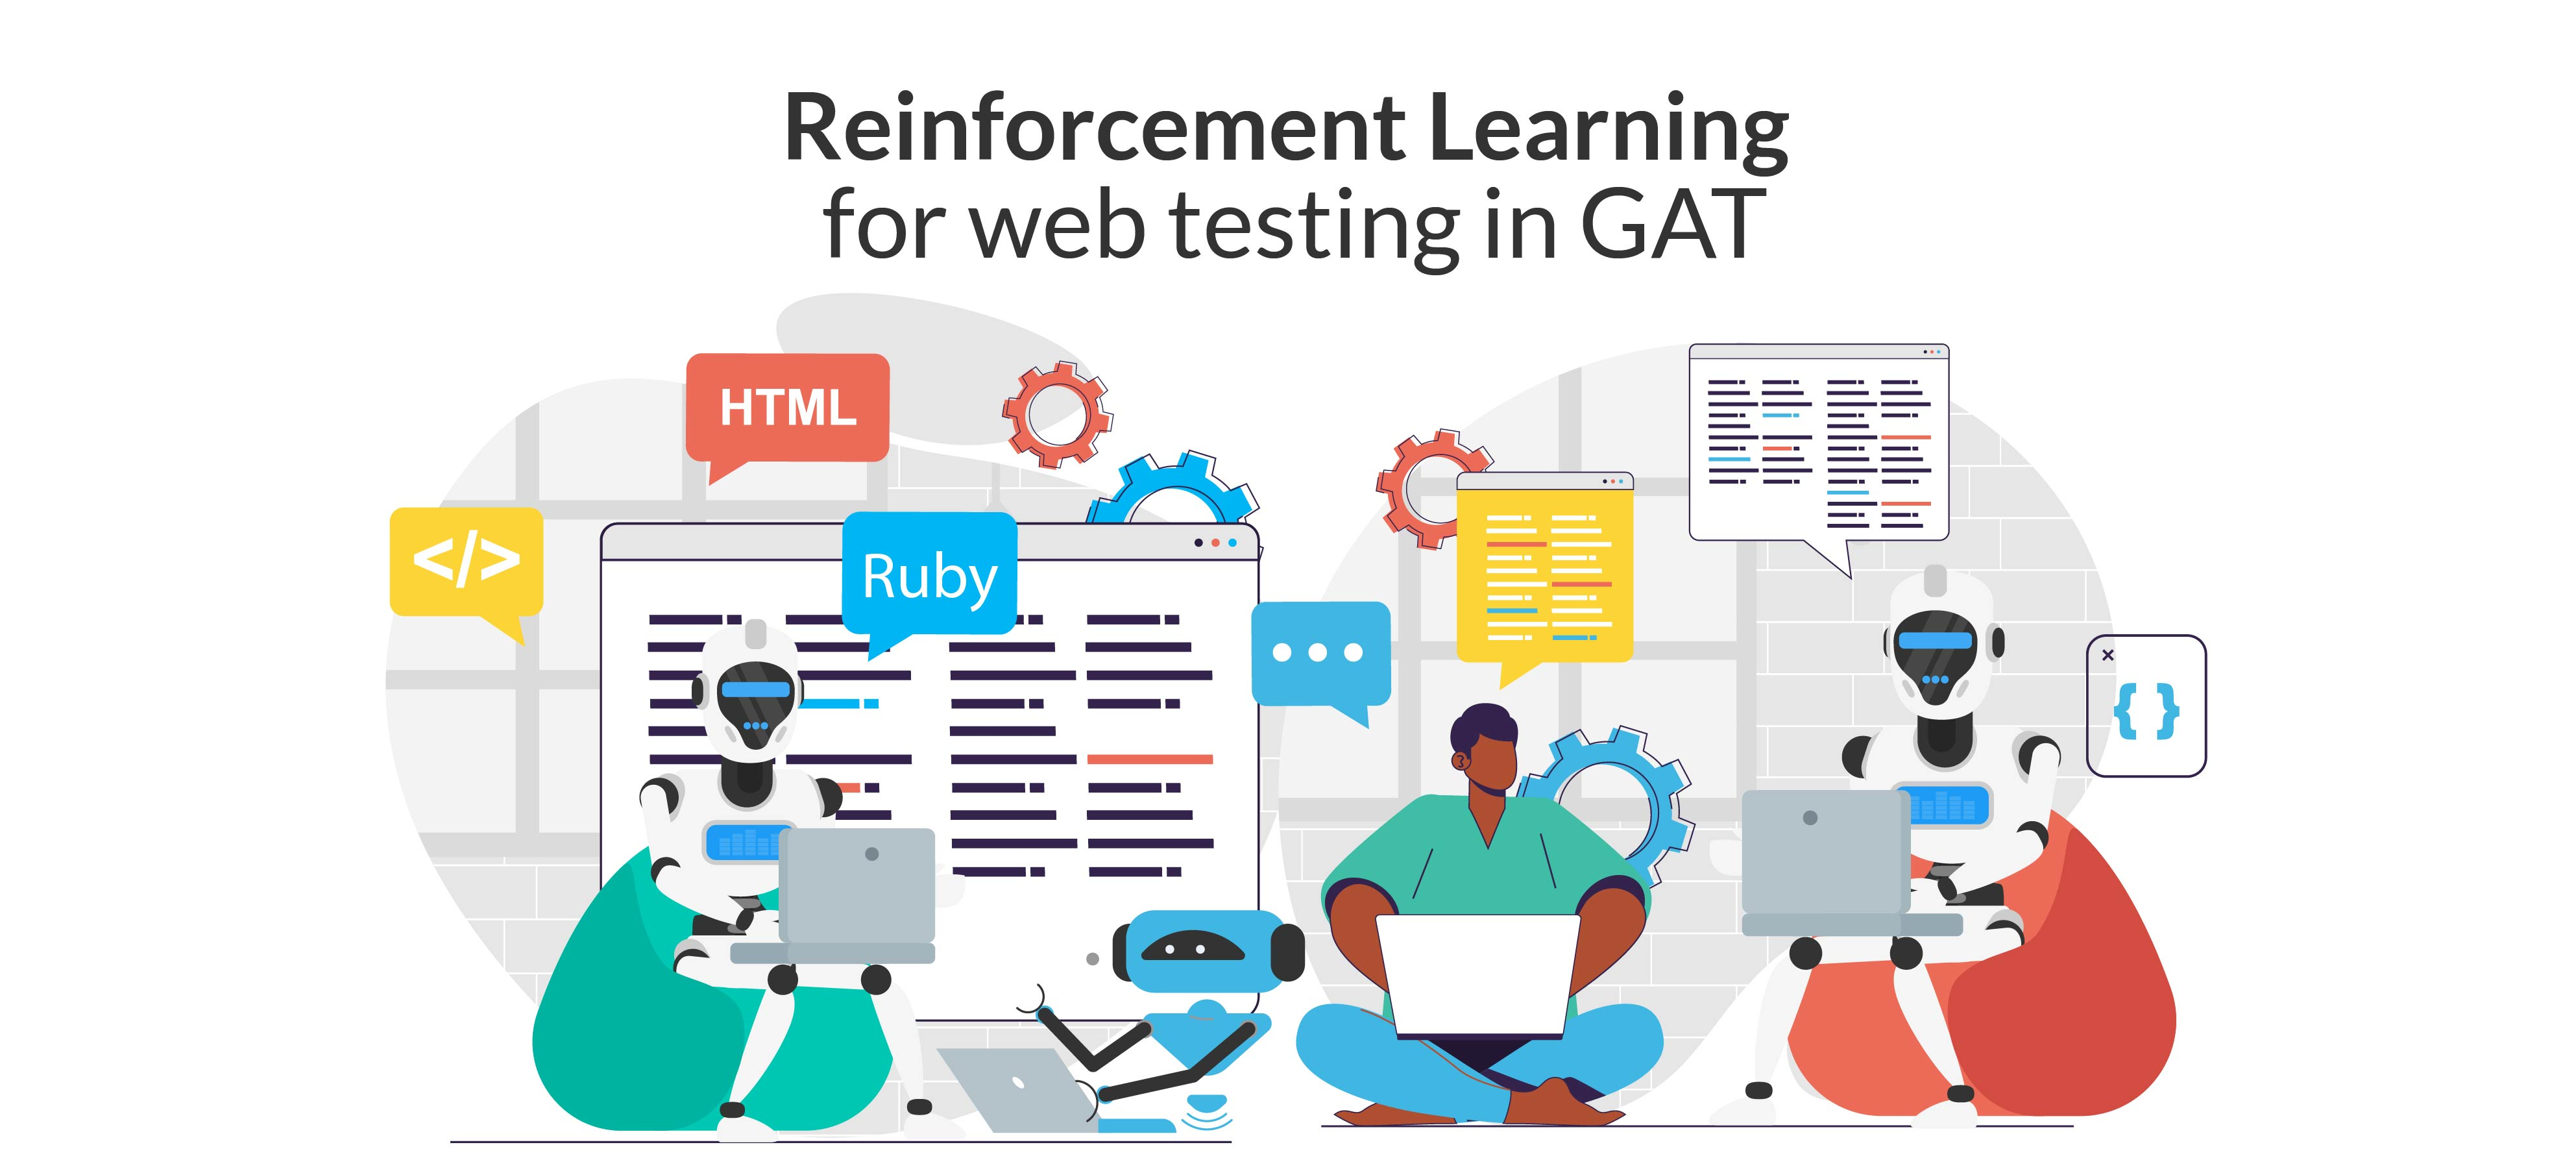 Reinforcement Learning for Web Testing at Global App Testing